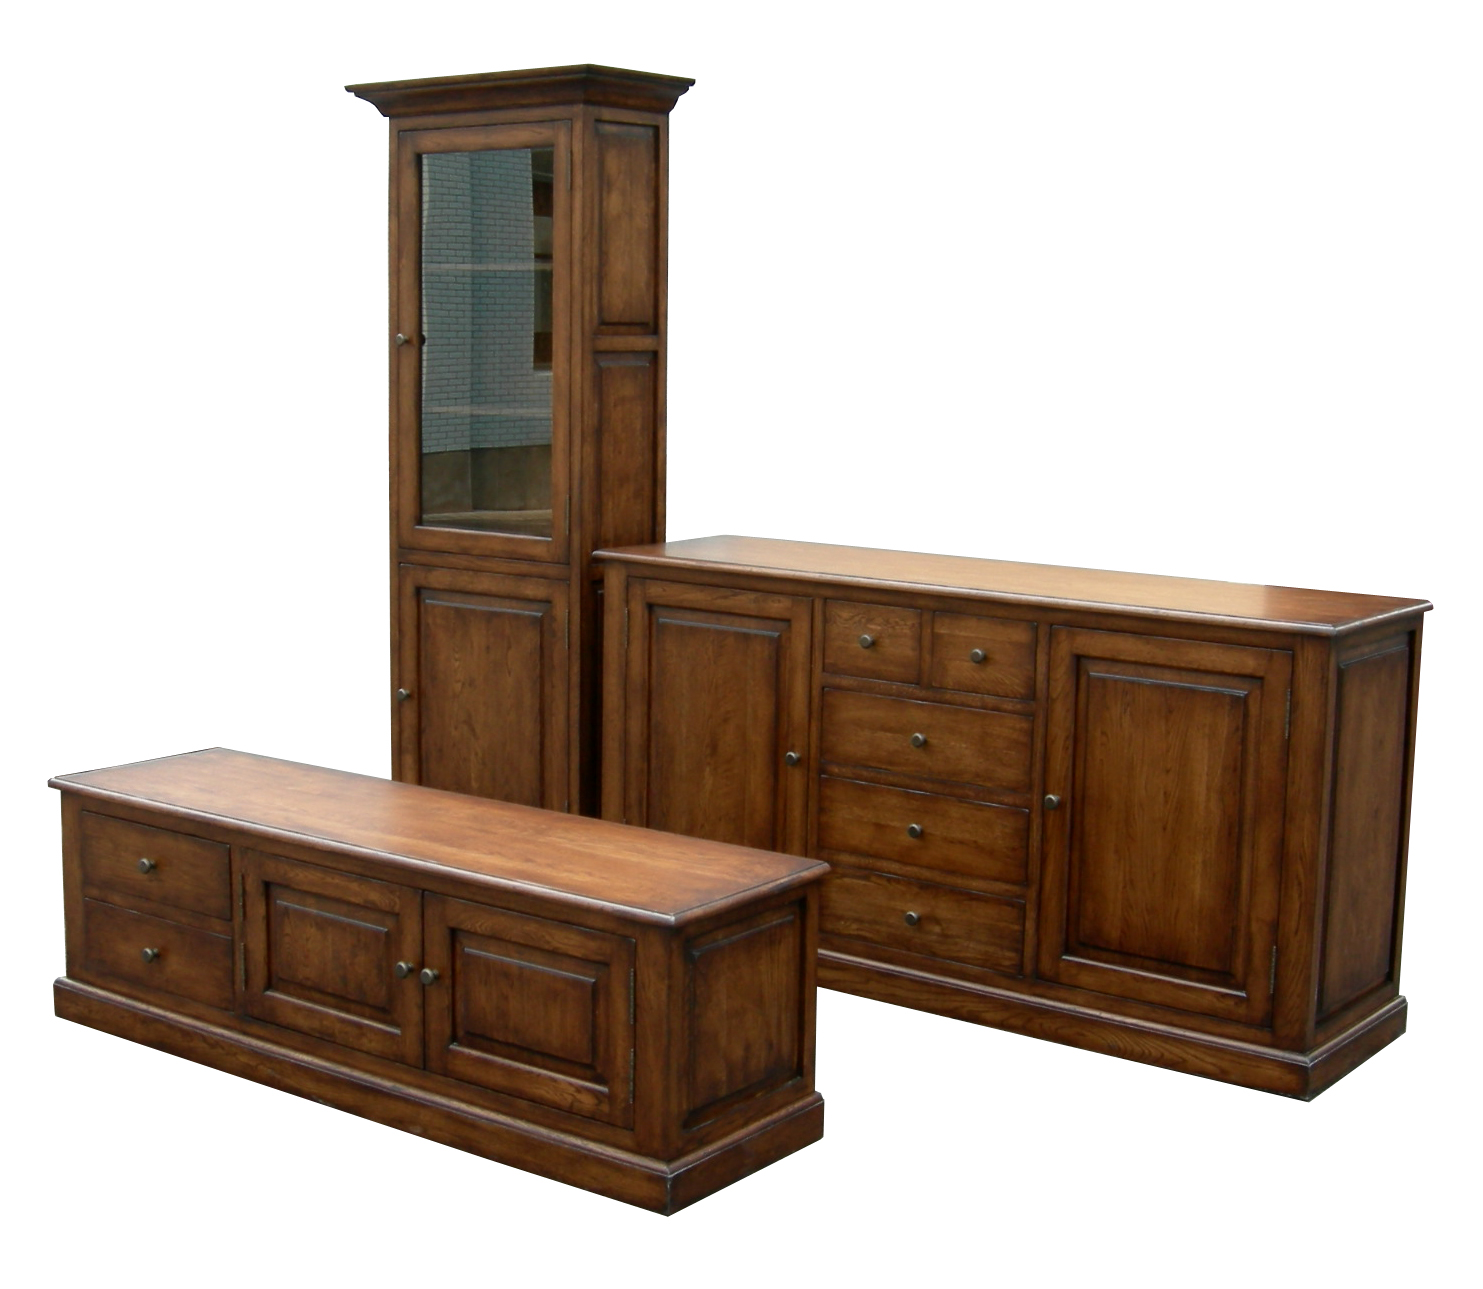 Wooden furniture designs wooden furniture shops in for Wooden furniture